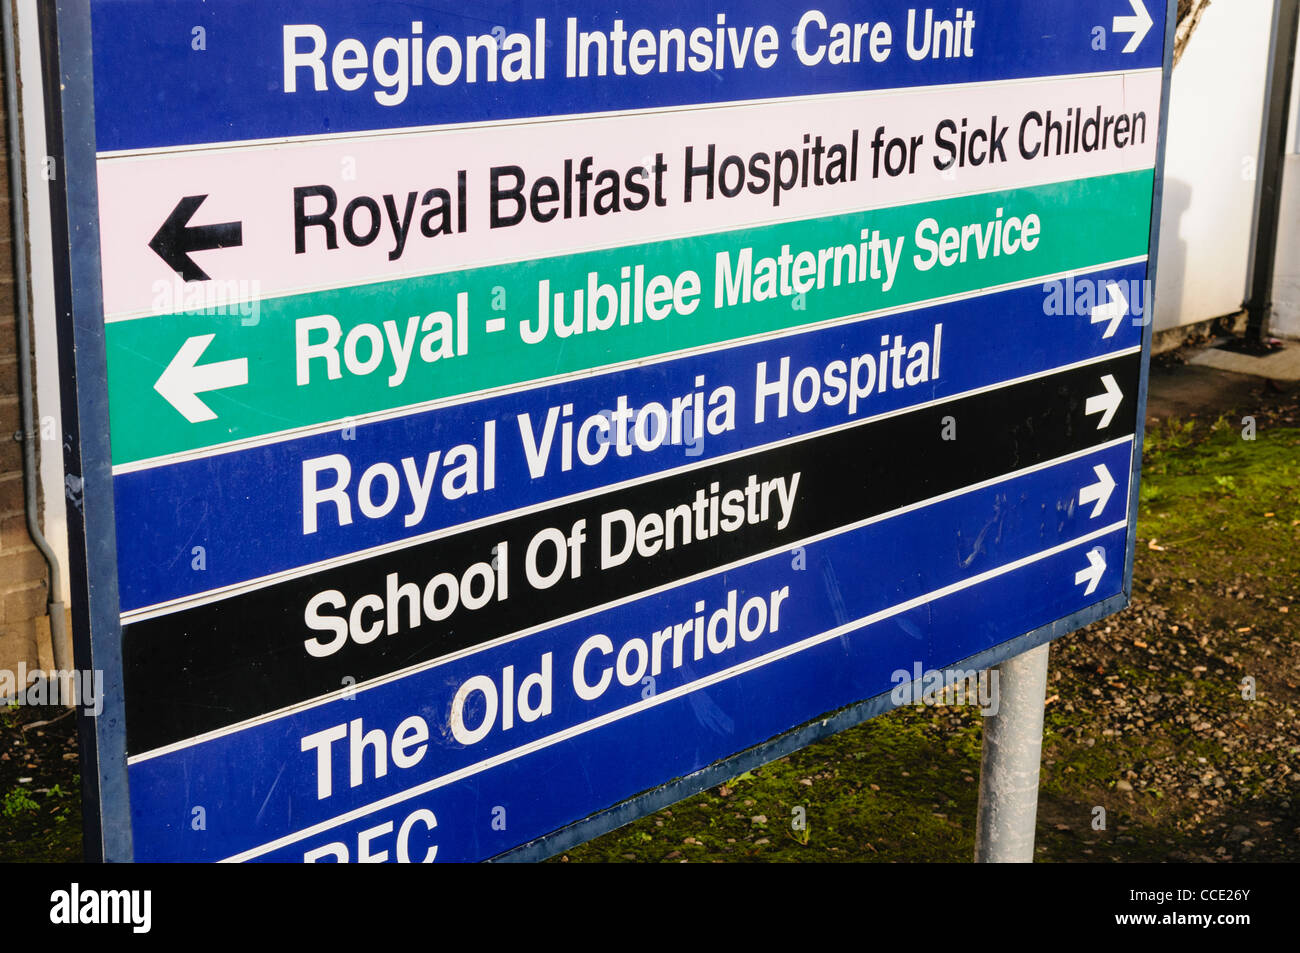 Signs at a Royal Victoria Hospital for Regional Intensive Care Unit, Royal Jubilee Maternity Service, School of - Stock Image